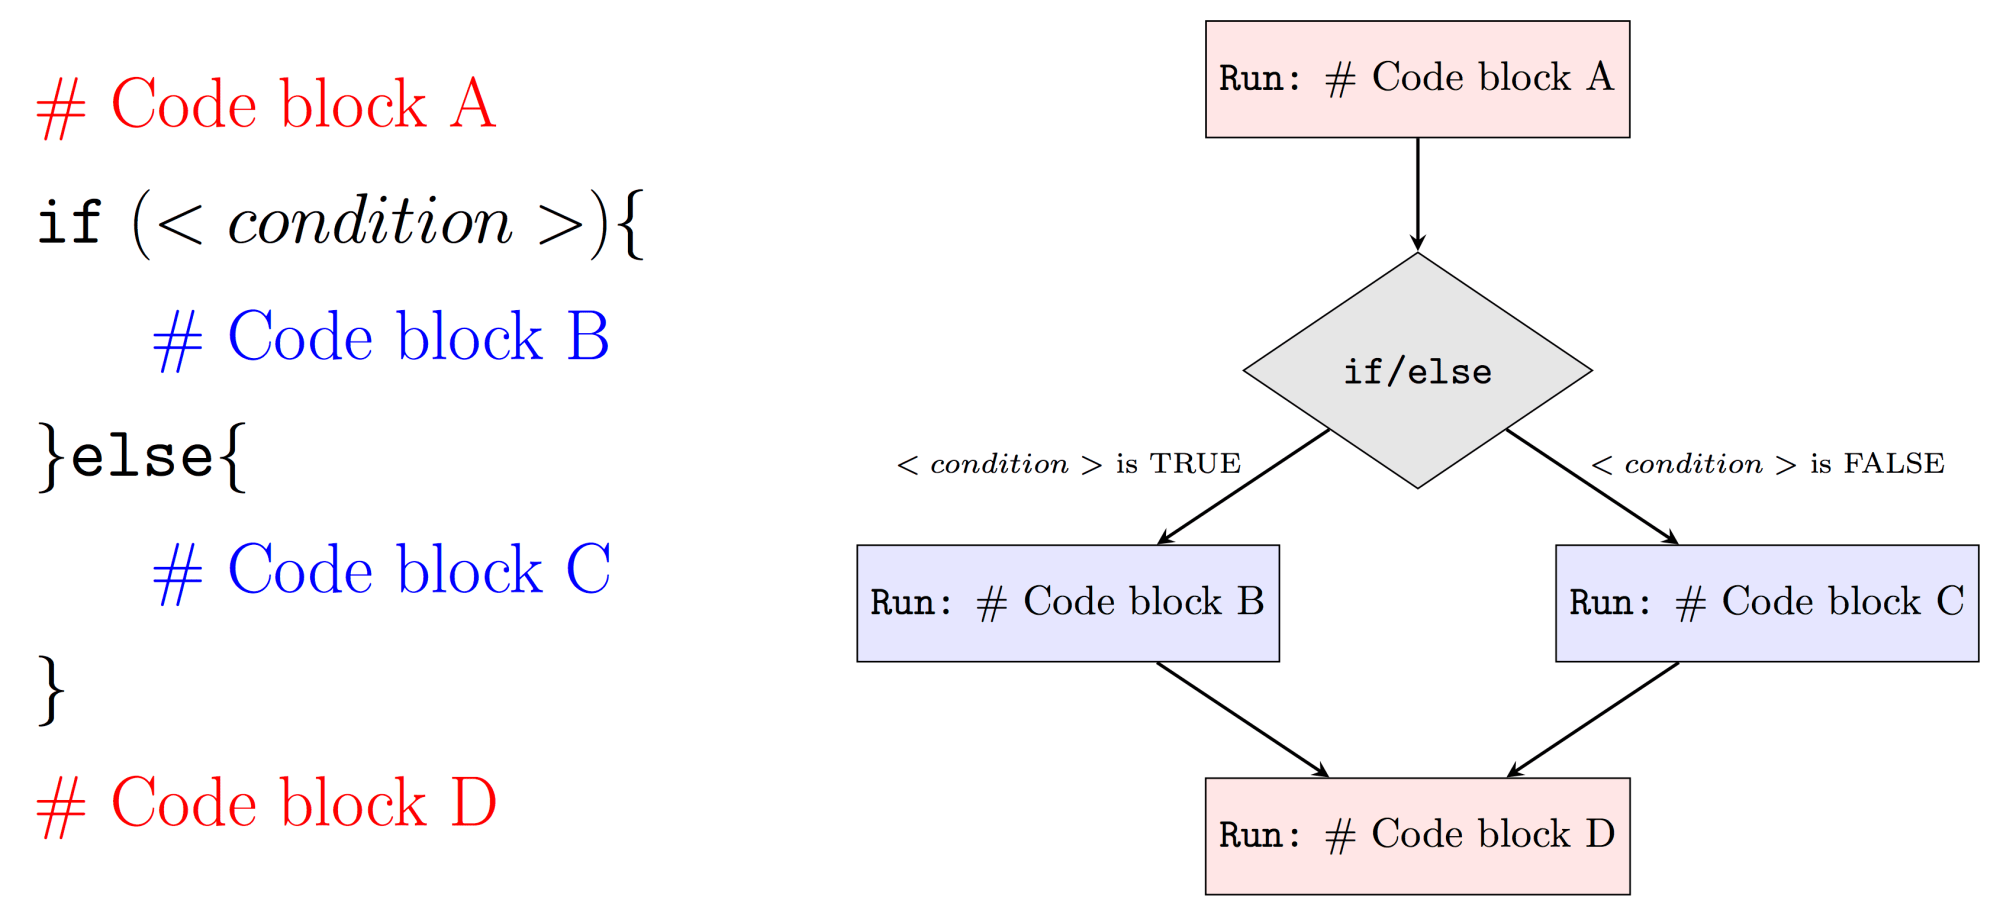 hight resolution of therefore when condition is true our program will run code block a code block b and then code block d while when condition is false it will run code